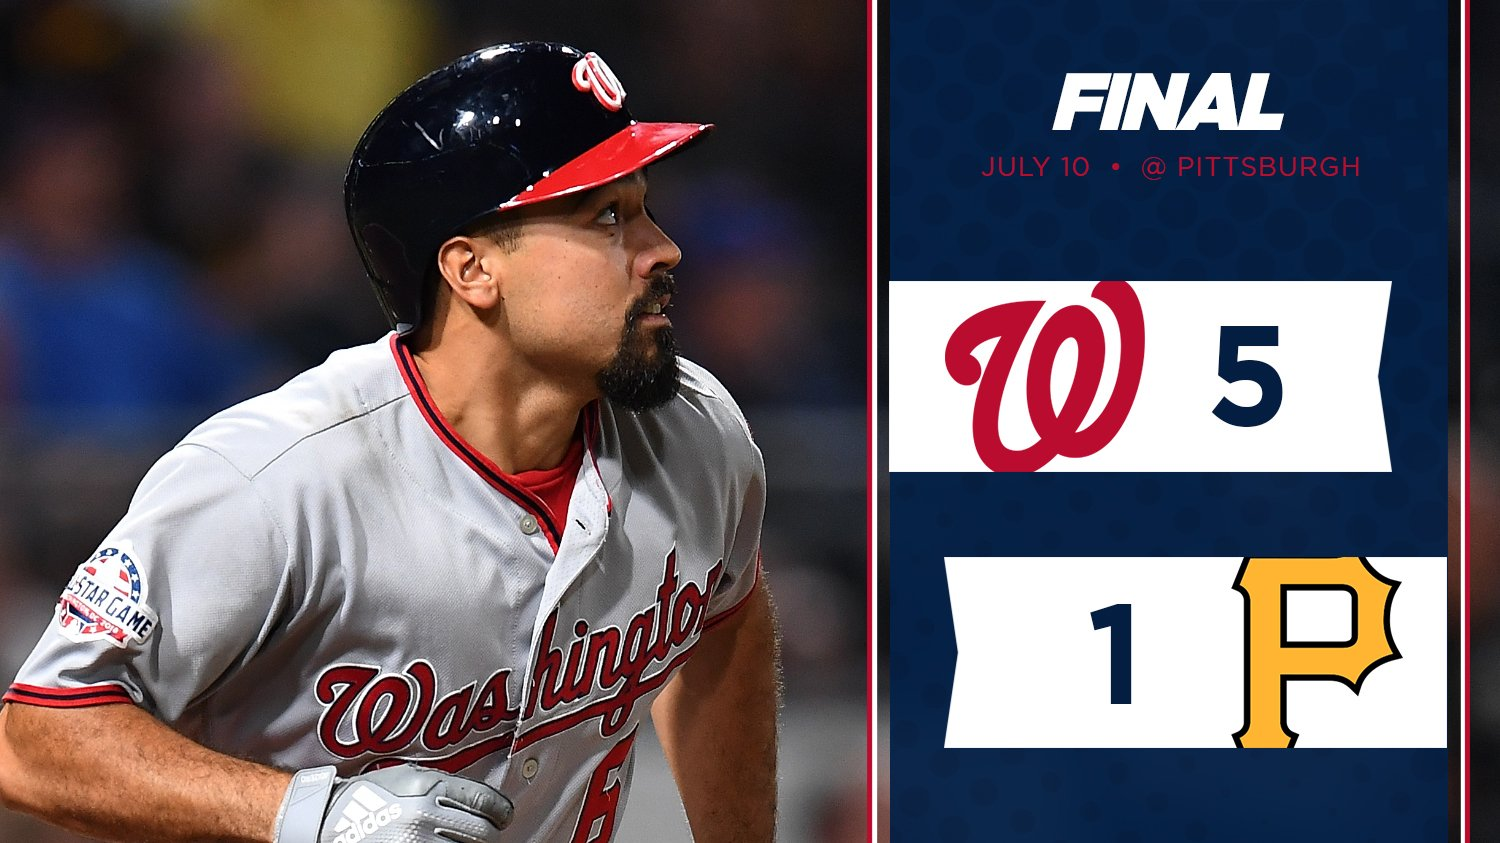 Tony Four Bags and Daniel Hits Murphy propel the Nats to a #CurlyW.  RECAP // https://t.co/OtNXOXpdG4 https://t.co/ngQEWs9otW